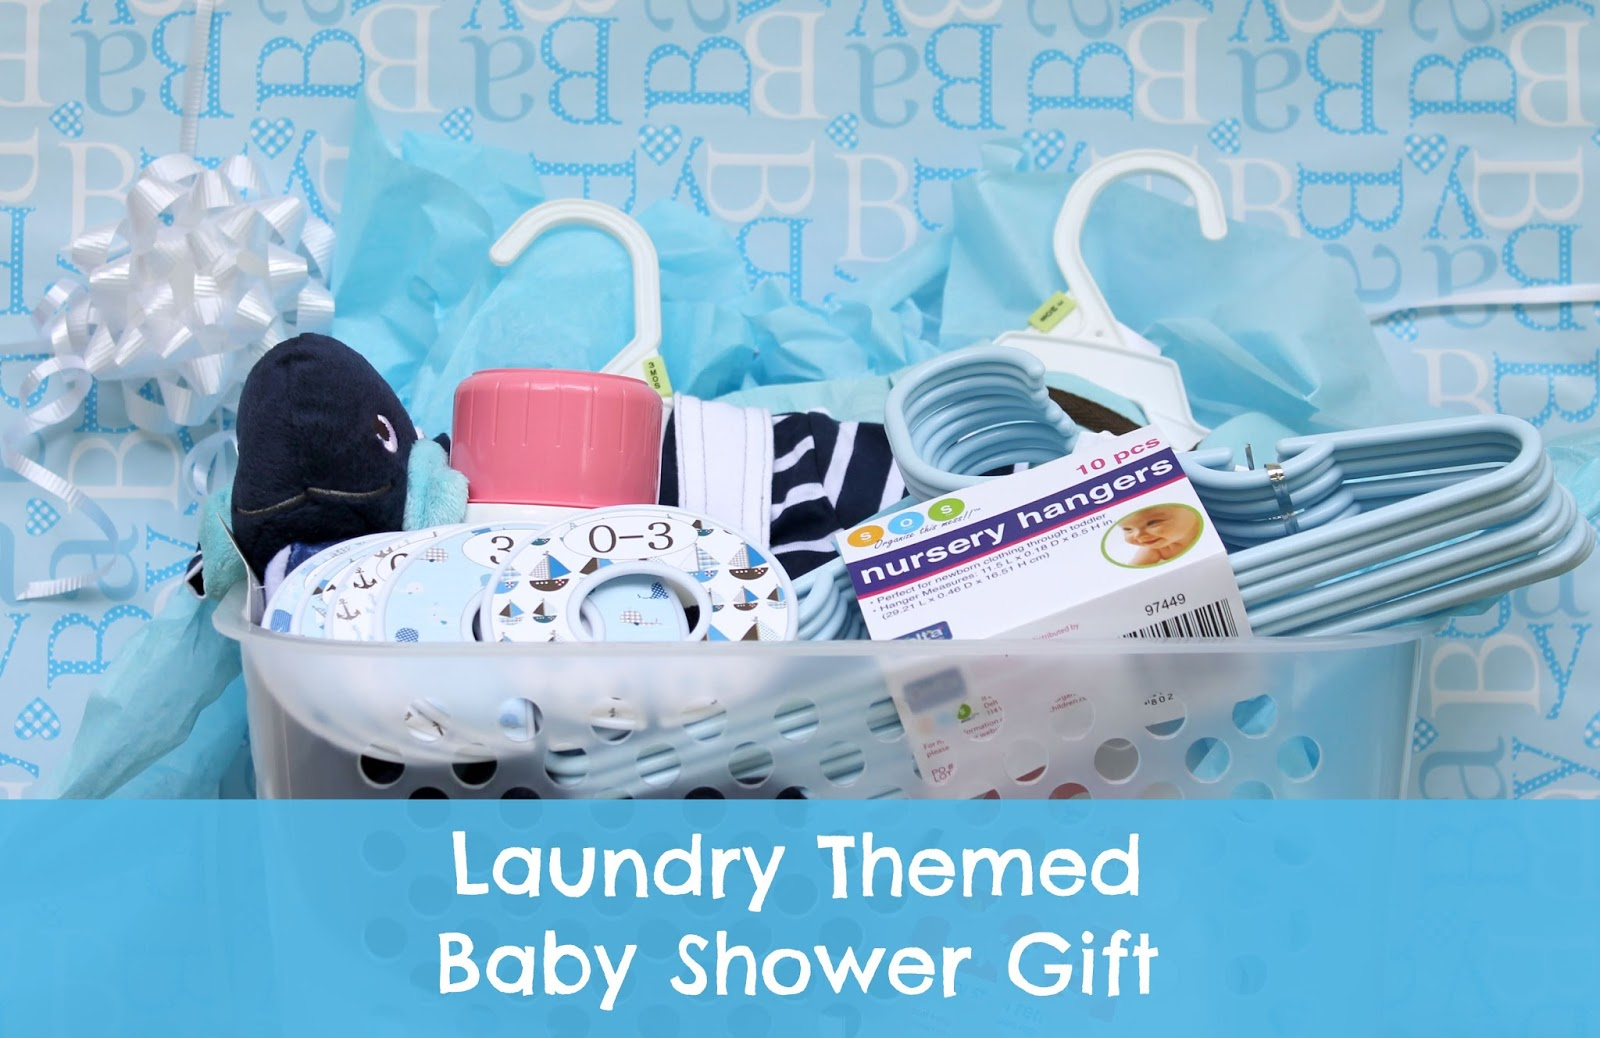 Laundry Themed Baby Shower Gift Basket